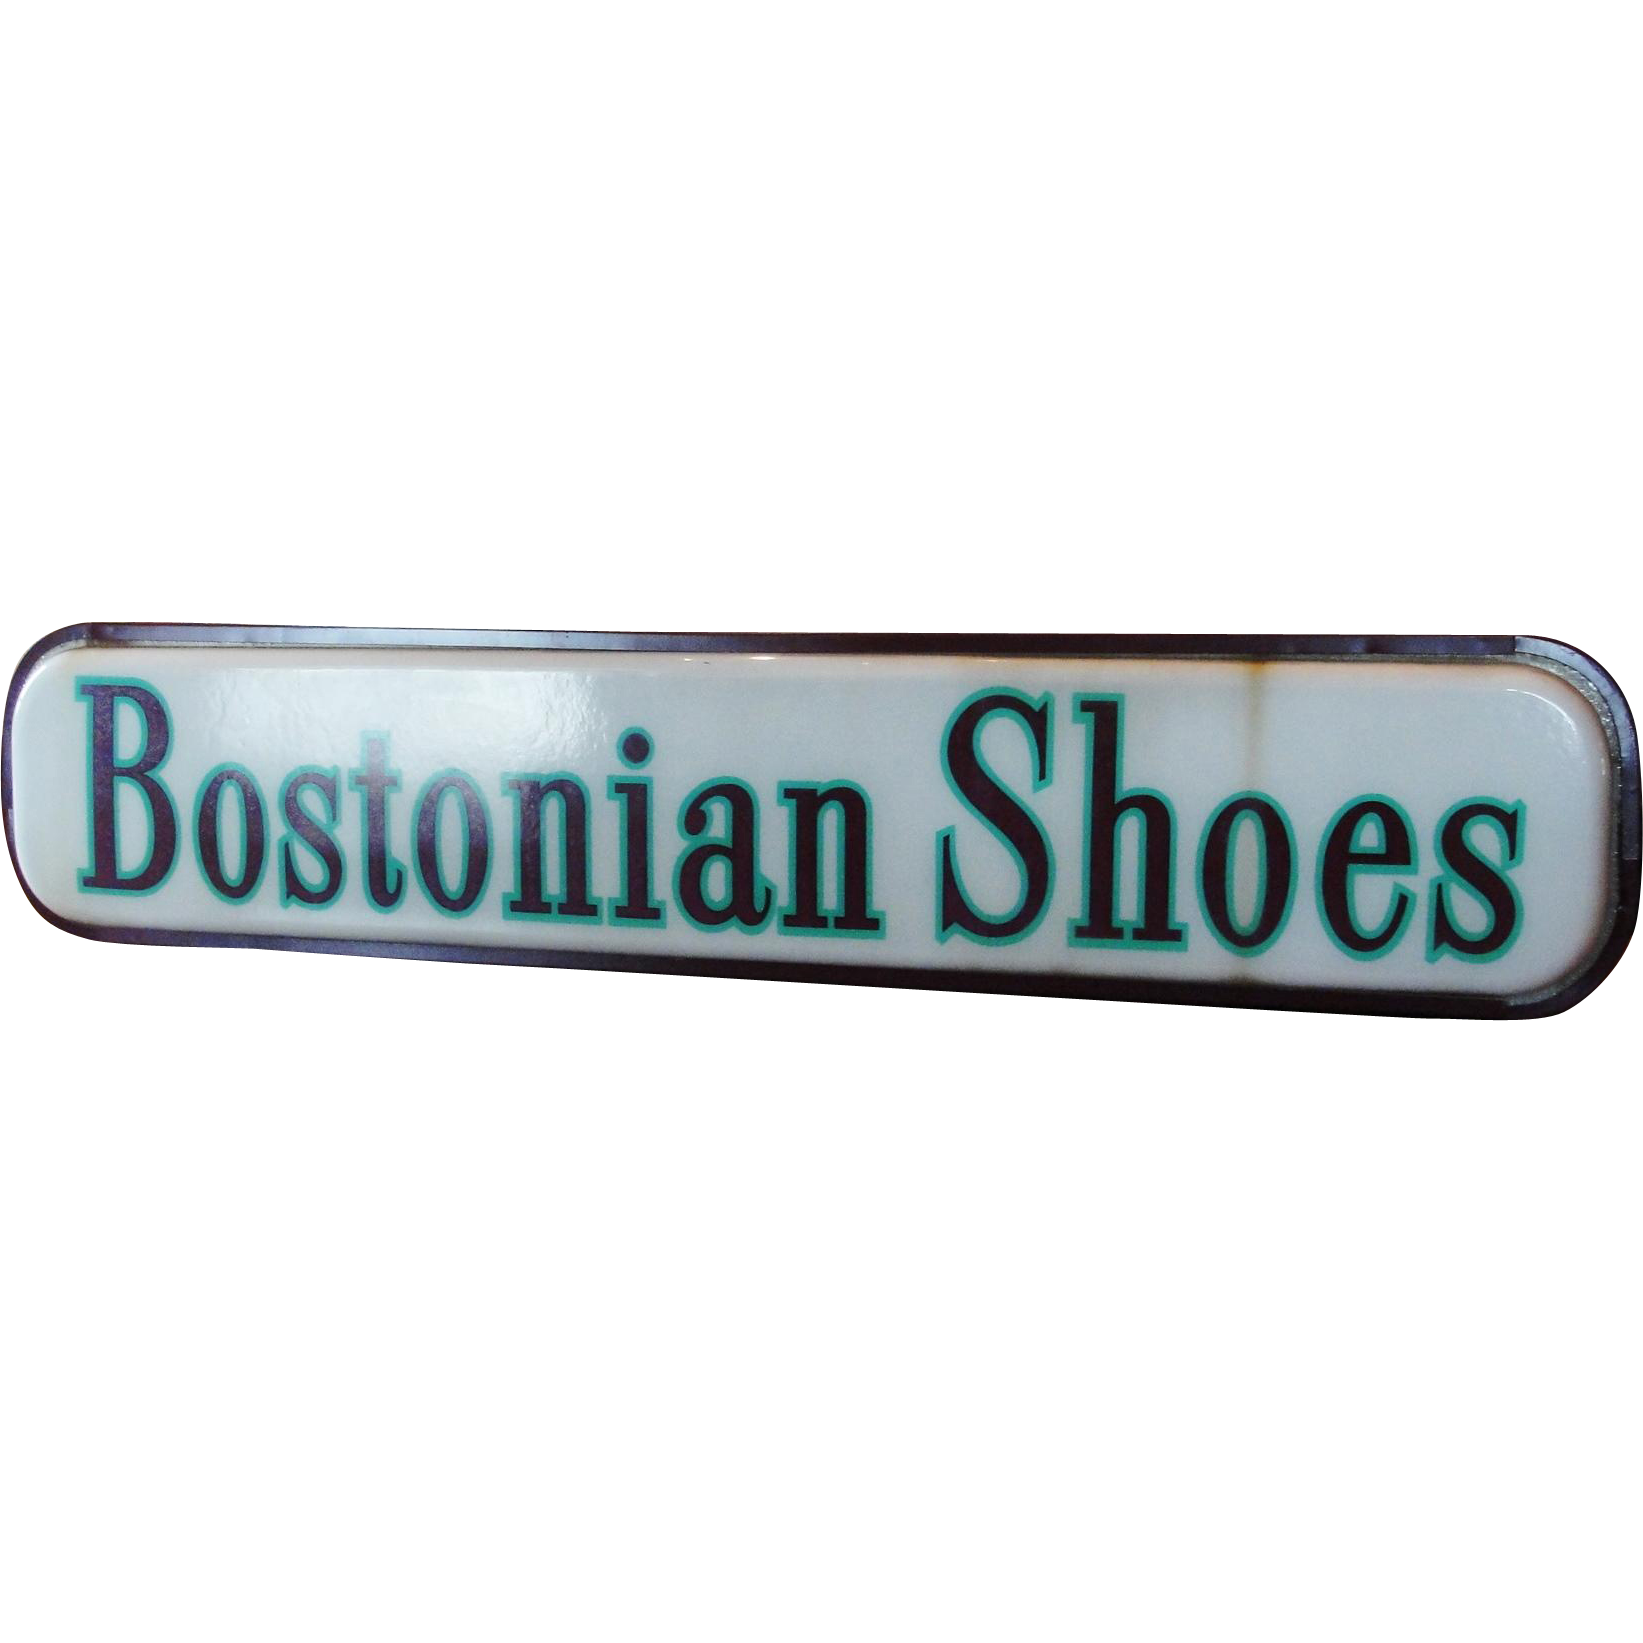 Vintage Double Sided Lighted Advertising Sign Bostonian